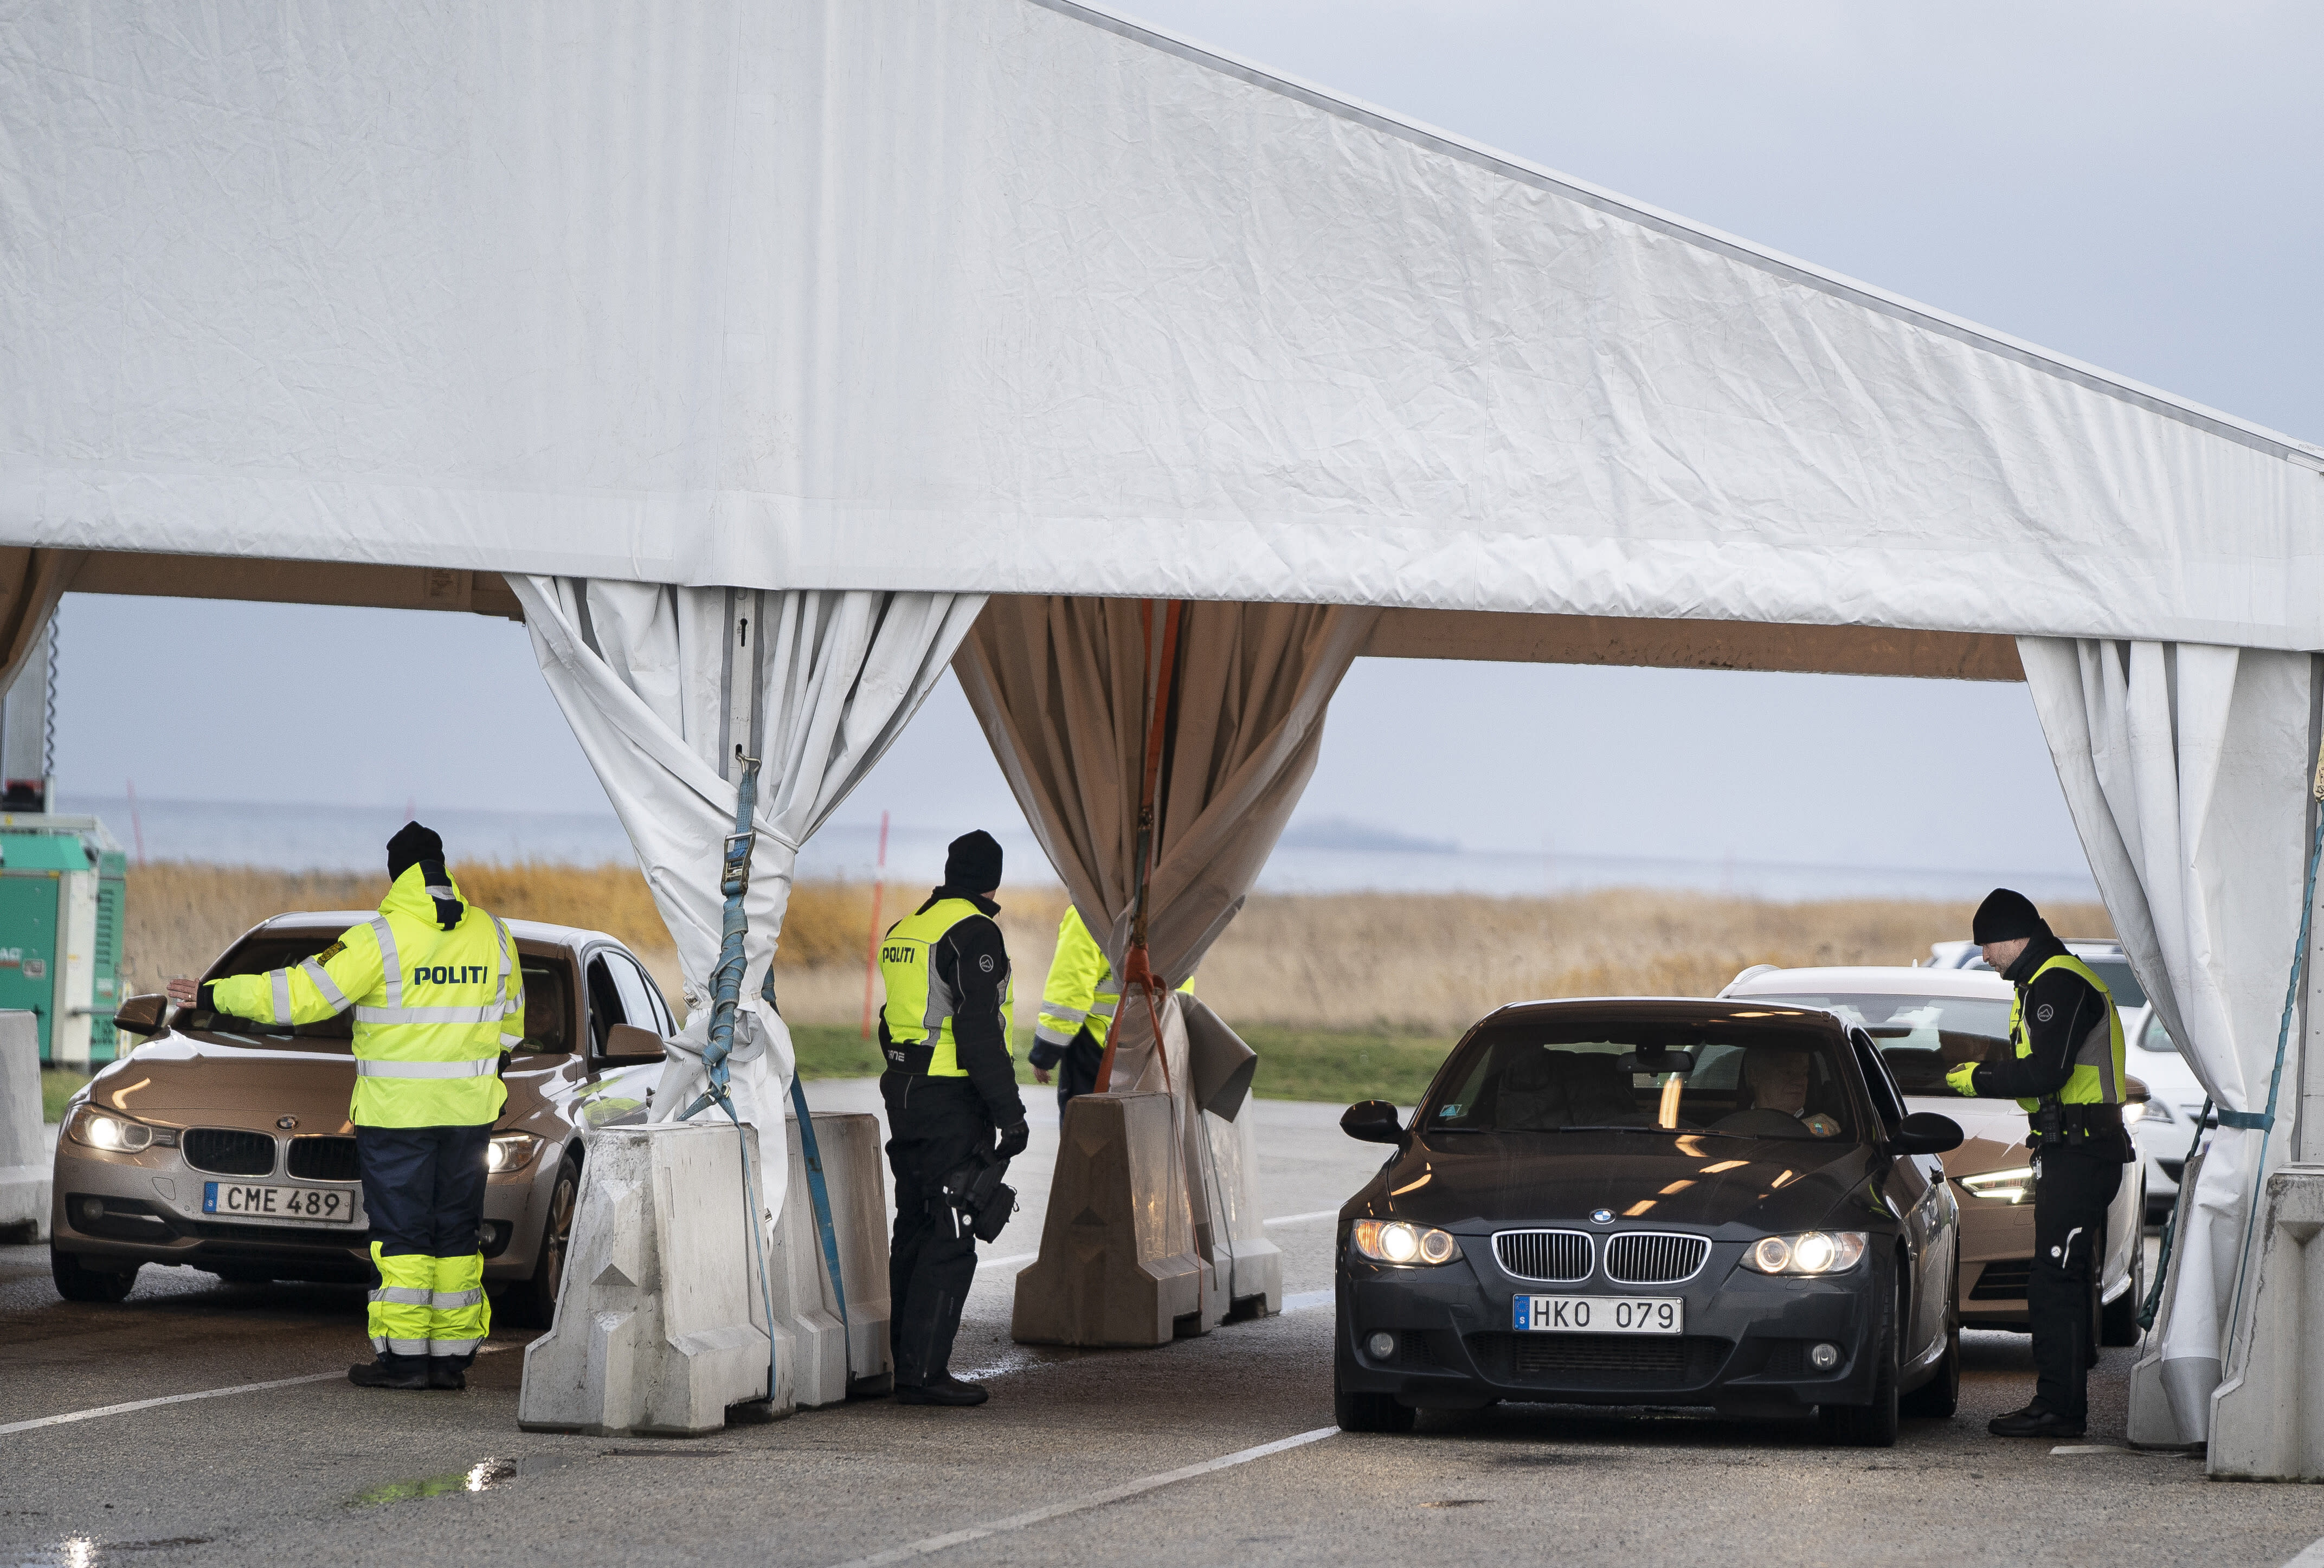 Danish police check travellers from Sweden, near the Highway coming out of the Tunnel near Copenhagen, Denmark, Tuesday Nov. 12, 2019. Danish police have begun to carry out border checks at its crossings with Sweden after a series of shooting crimes and explosions around Copenhagen that Danes say were carried out by perpetrators from the next-door neighbour. (Liselotte Sabroe/Ritzau Scanpix via AP)